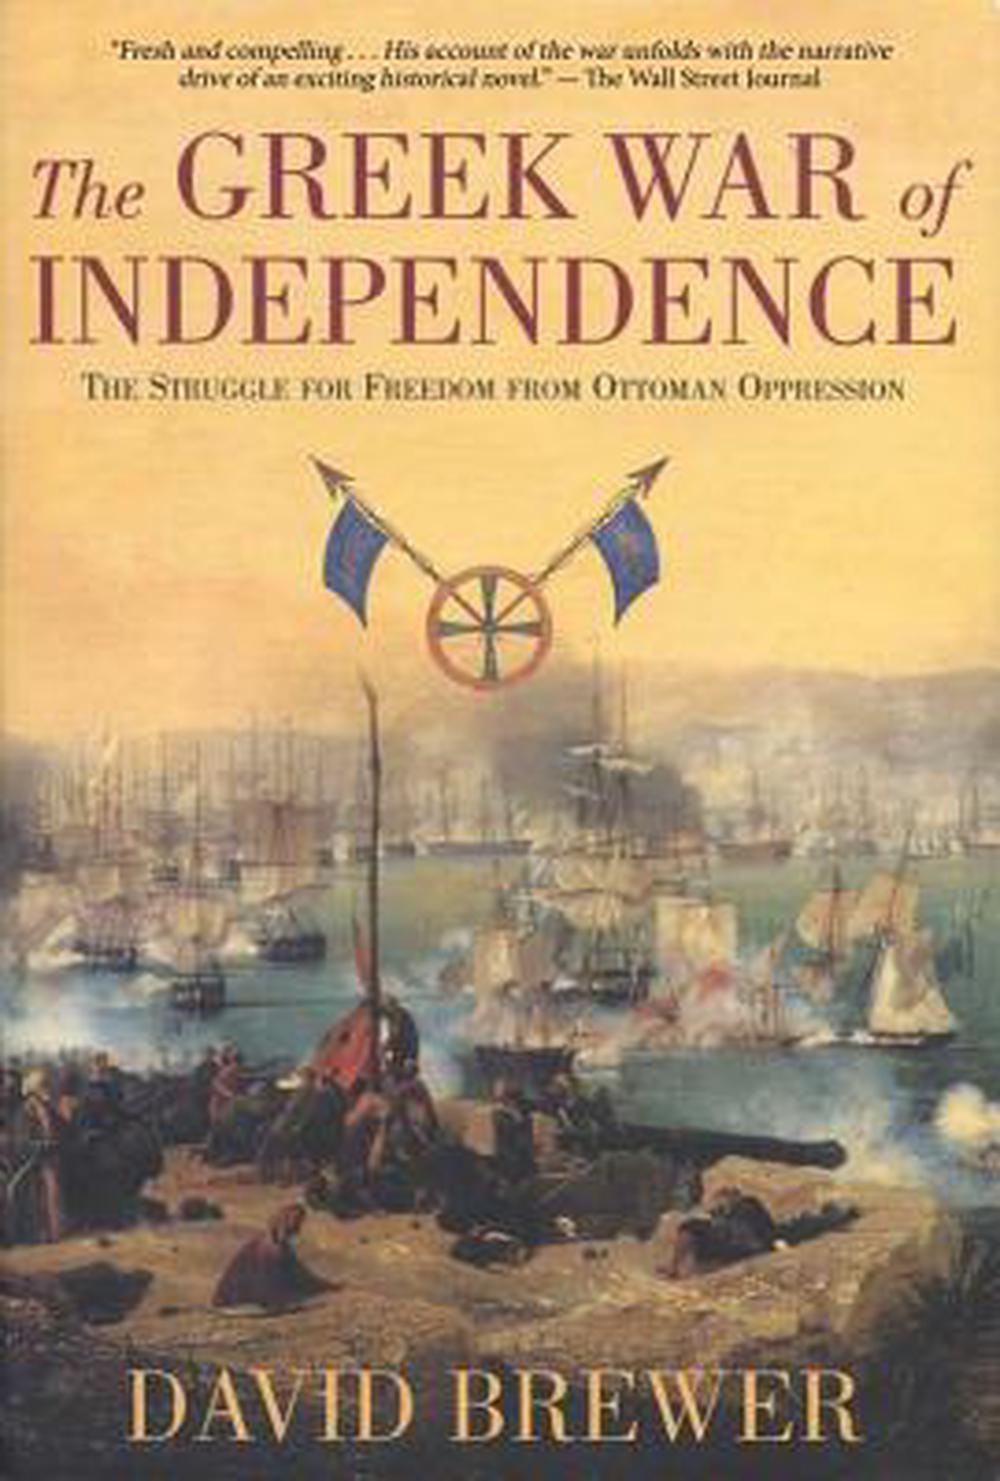 the greek war of independence The greek war of independence, also known as the greek revolution (greek: ελληνική επανάσταση του 1821, elliniki epanastasi ottoman: يونان عصياني yunan i̇syanı greek uprising), was a successful war of independence waged by the greek revolutionaries between 1821 and 1832, with later assistance from russia, the united kingdom, france, and several other.